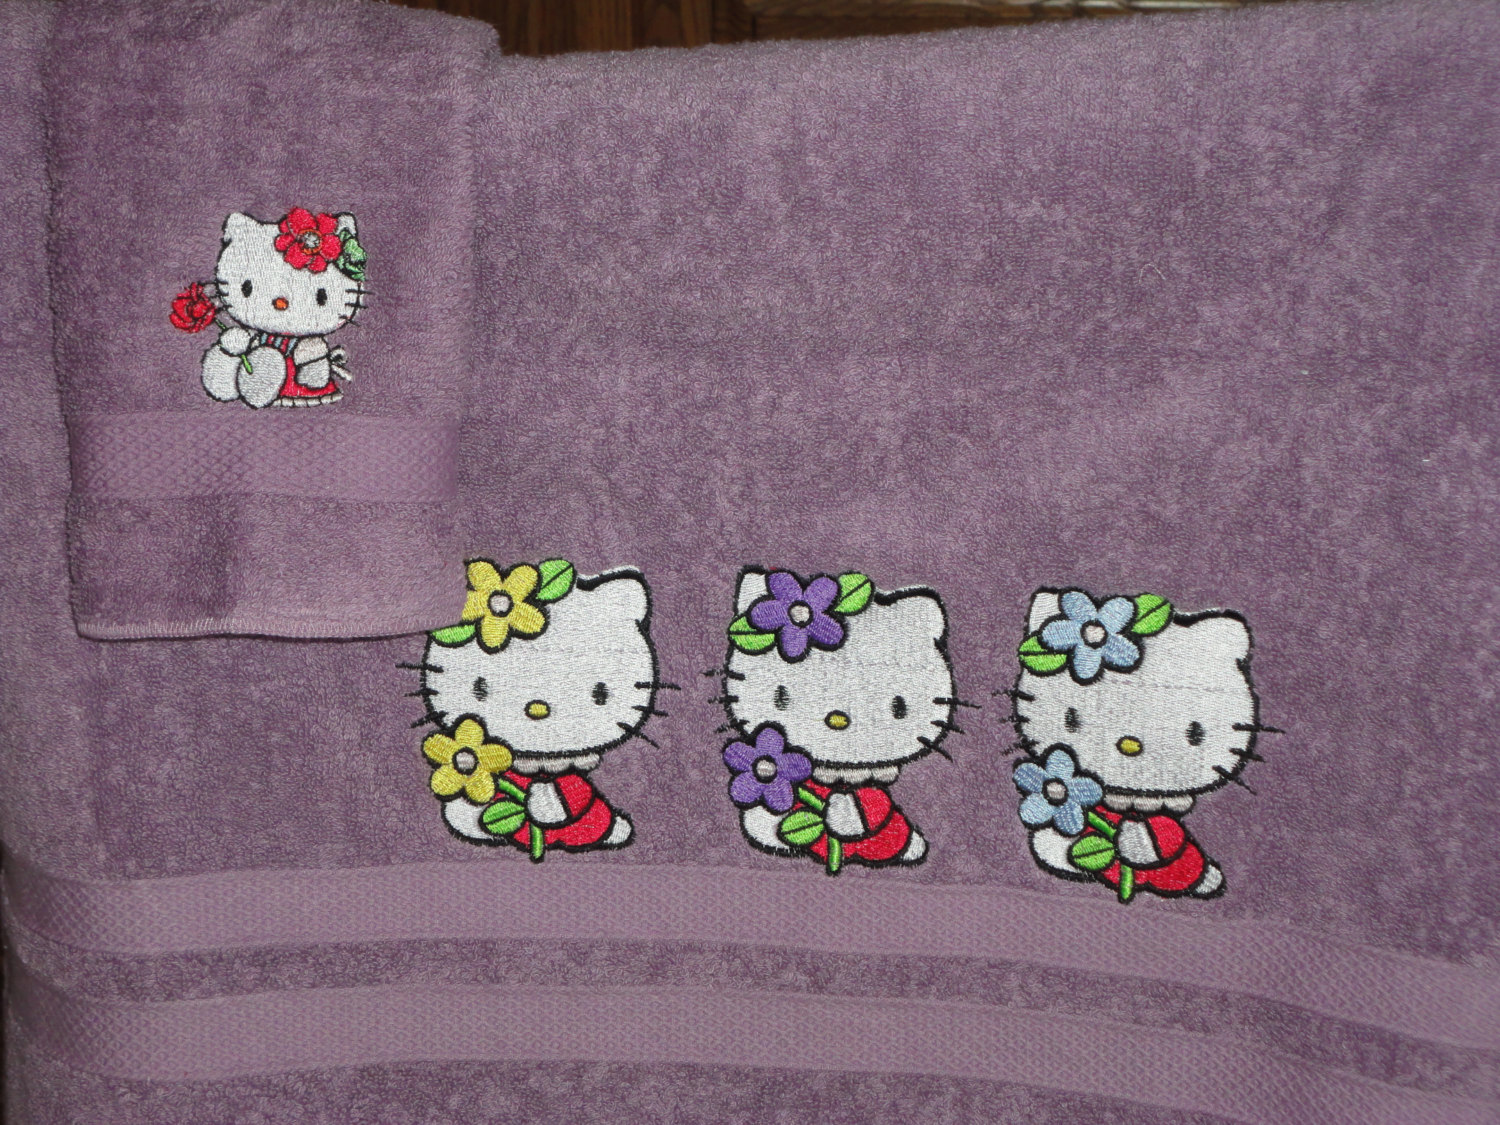 Embroidered Hello Kitty designs on towels